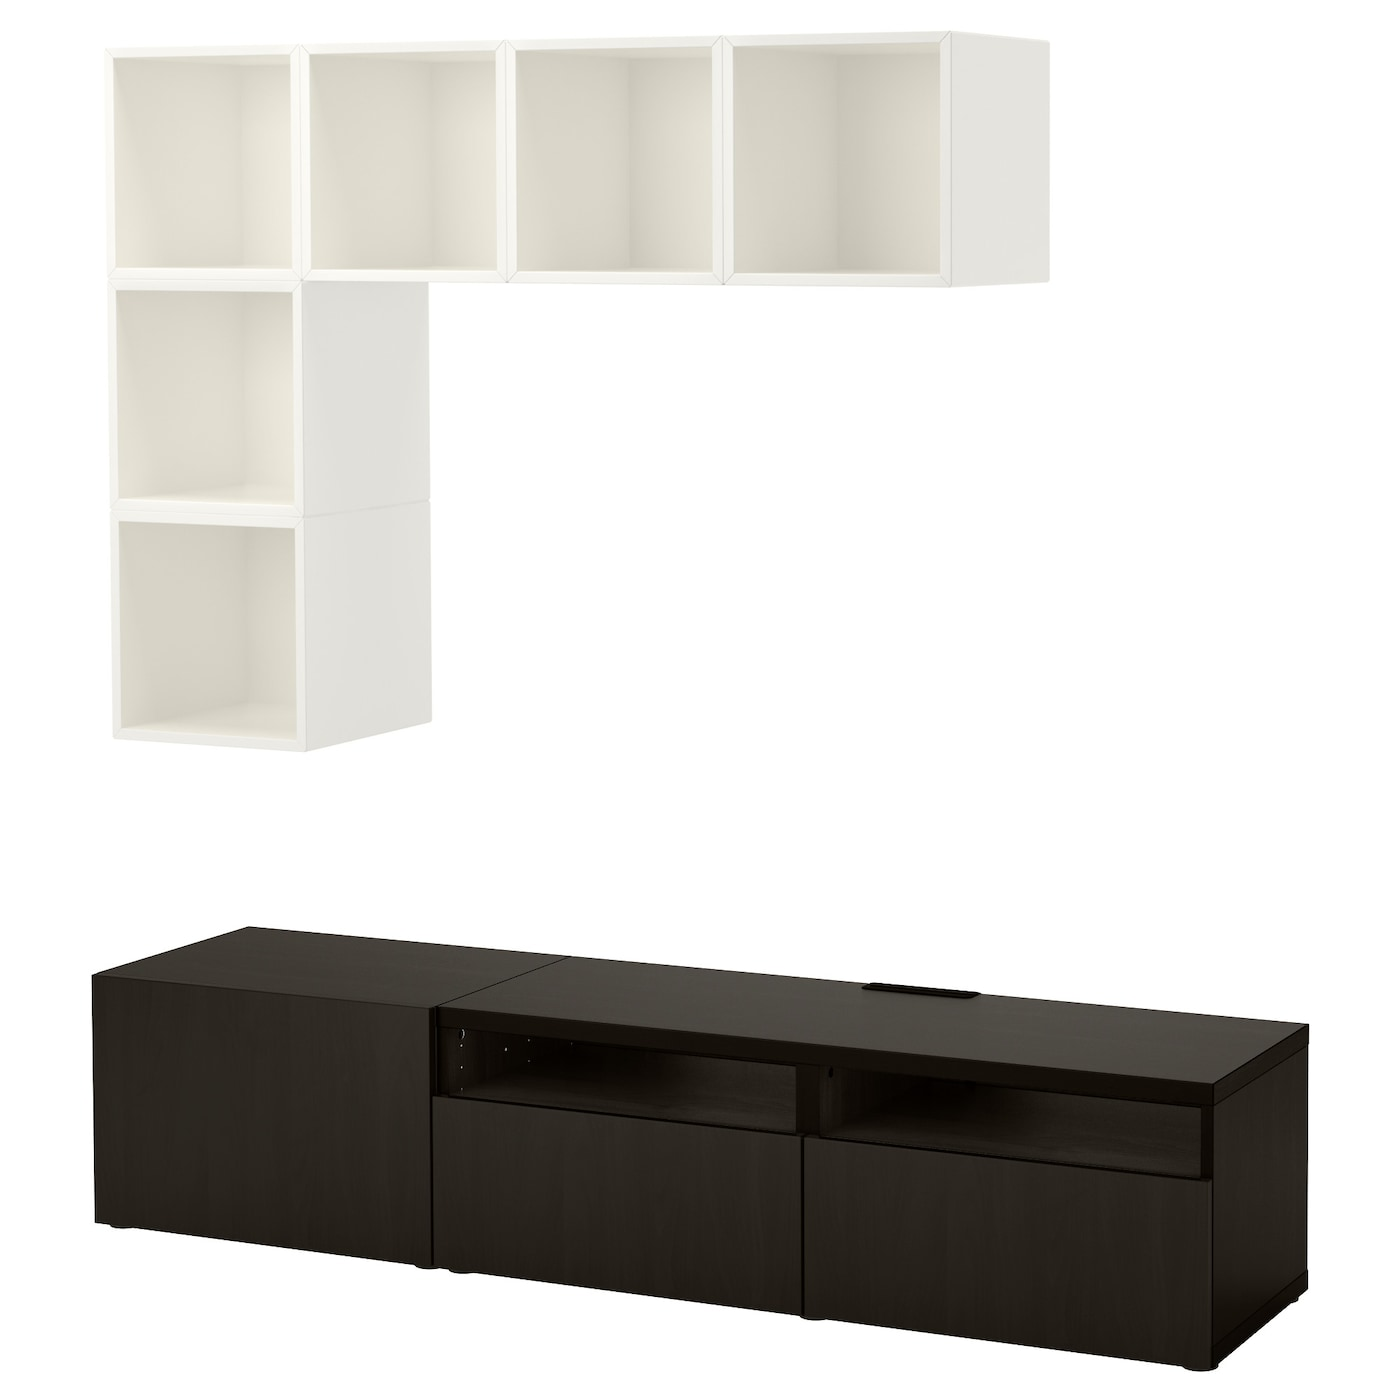 eket best combinaison rangement tv blanc brun noir 180x40x170 cm ikea. Black Bedroom Furniture Sets. Home Design Ideas